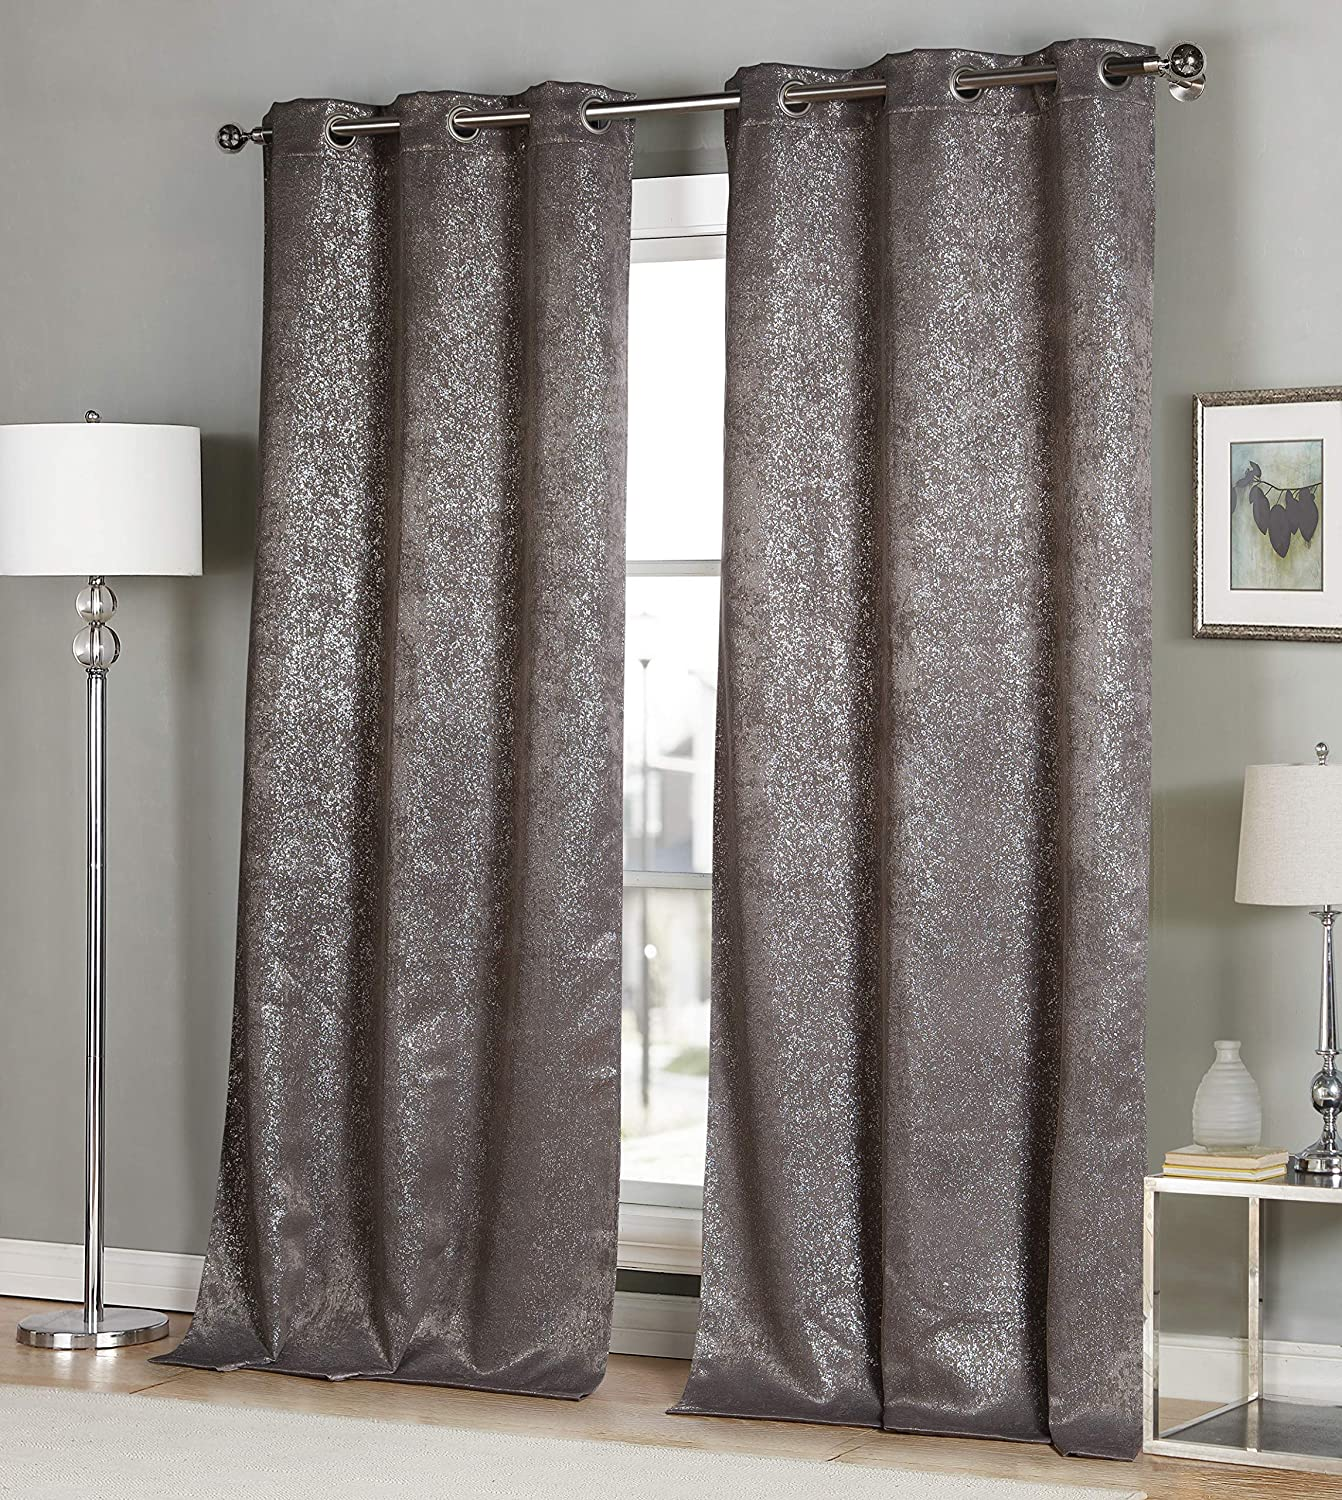 38x96 2 Pieces Duck River Solid Blackout Curtain for Bedroom Mouse